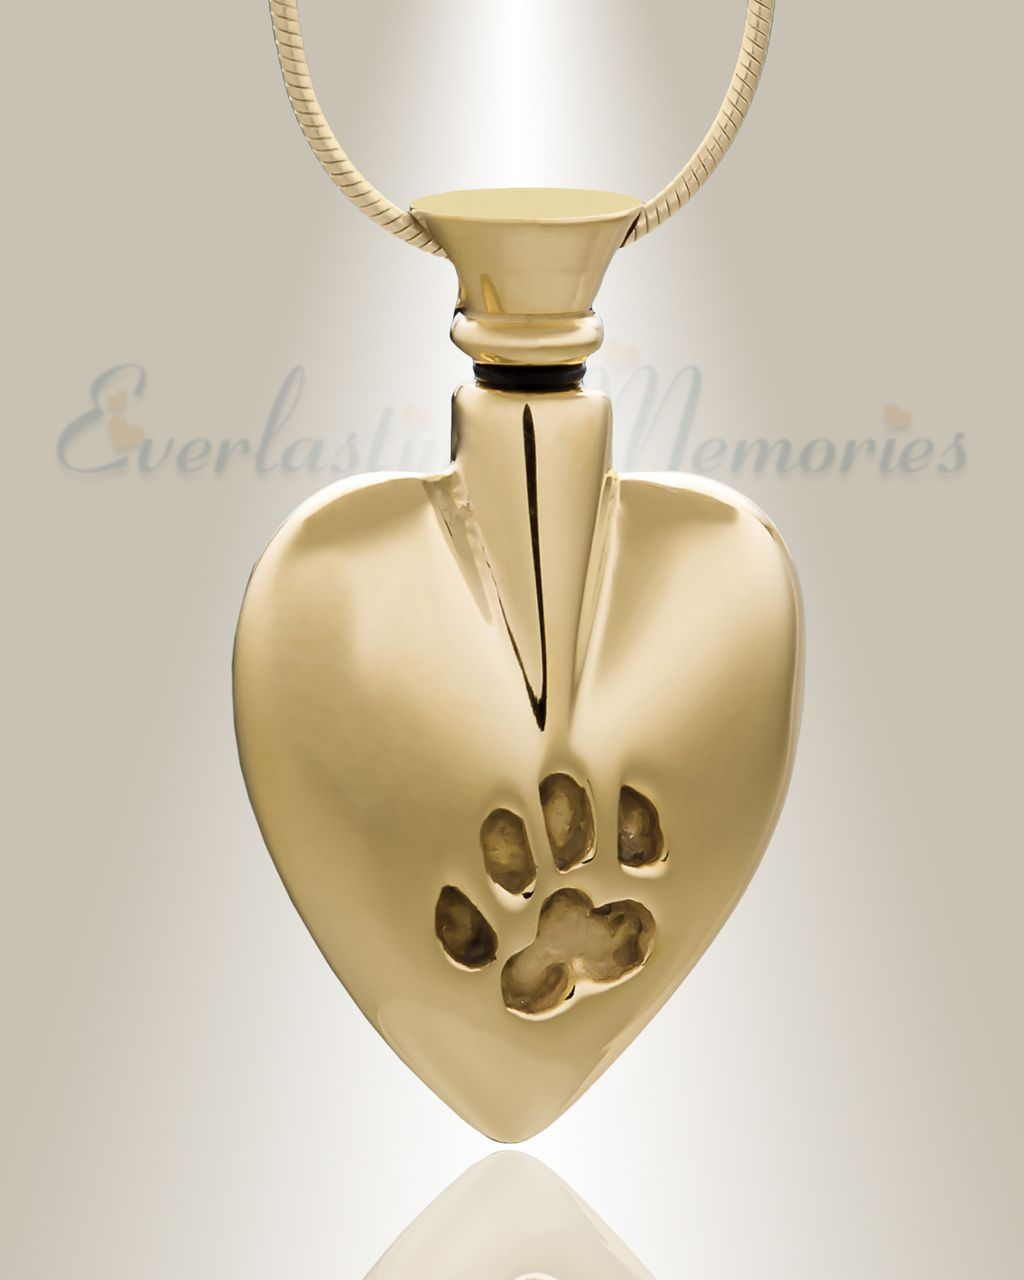 Gold in my heart cremation jewelry and pet memorial lockets gold in my heart cremation jewelry pet jewelry urns and pet memorial pendants to hold cremated ashes find many styles pet cremation keepsakes to honor aloadofball Choice Image